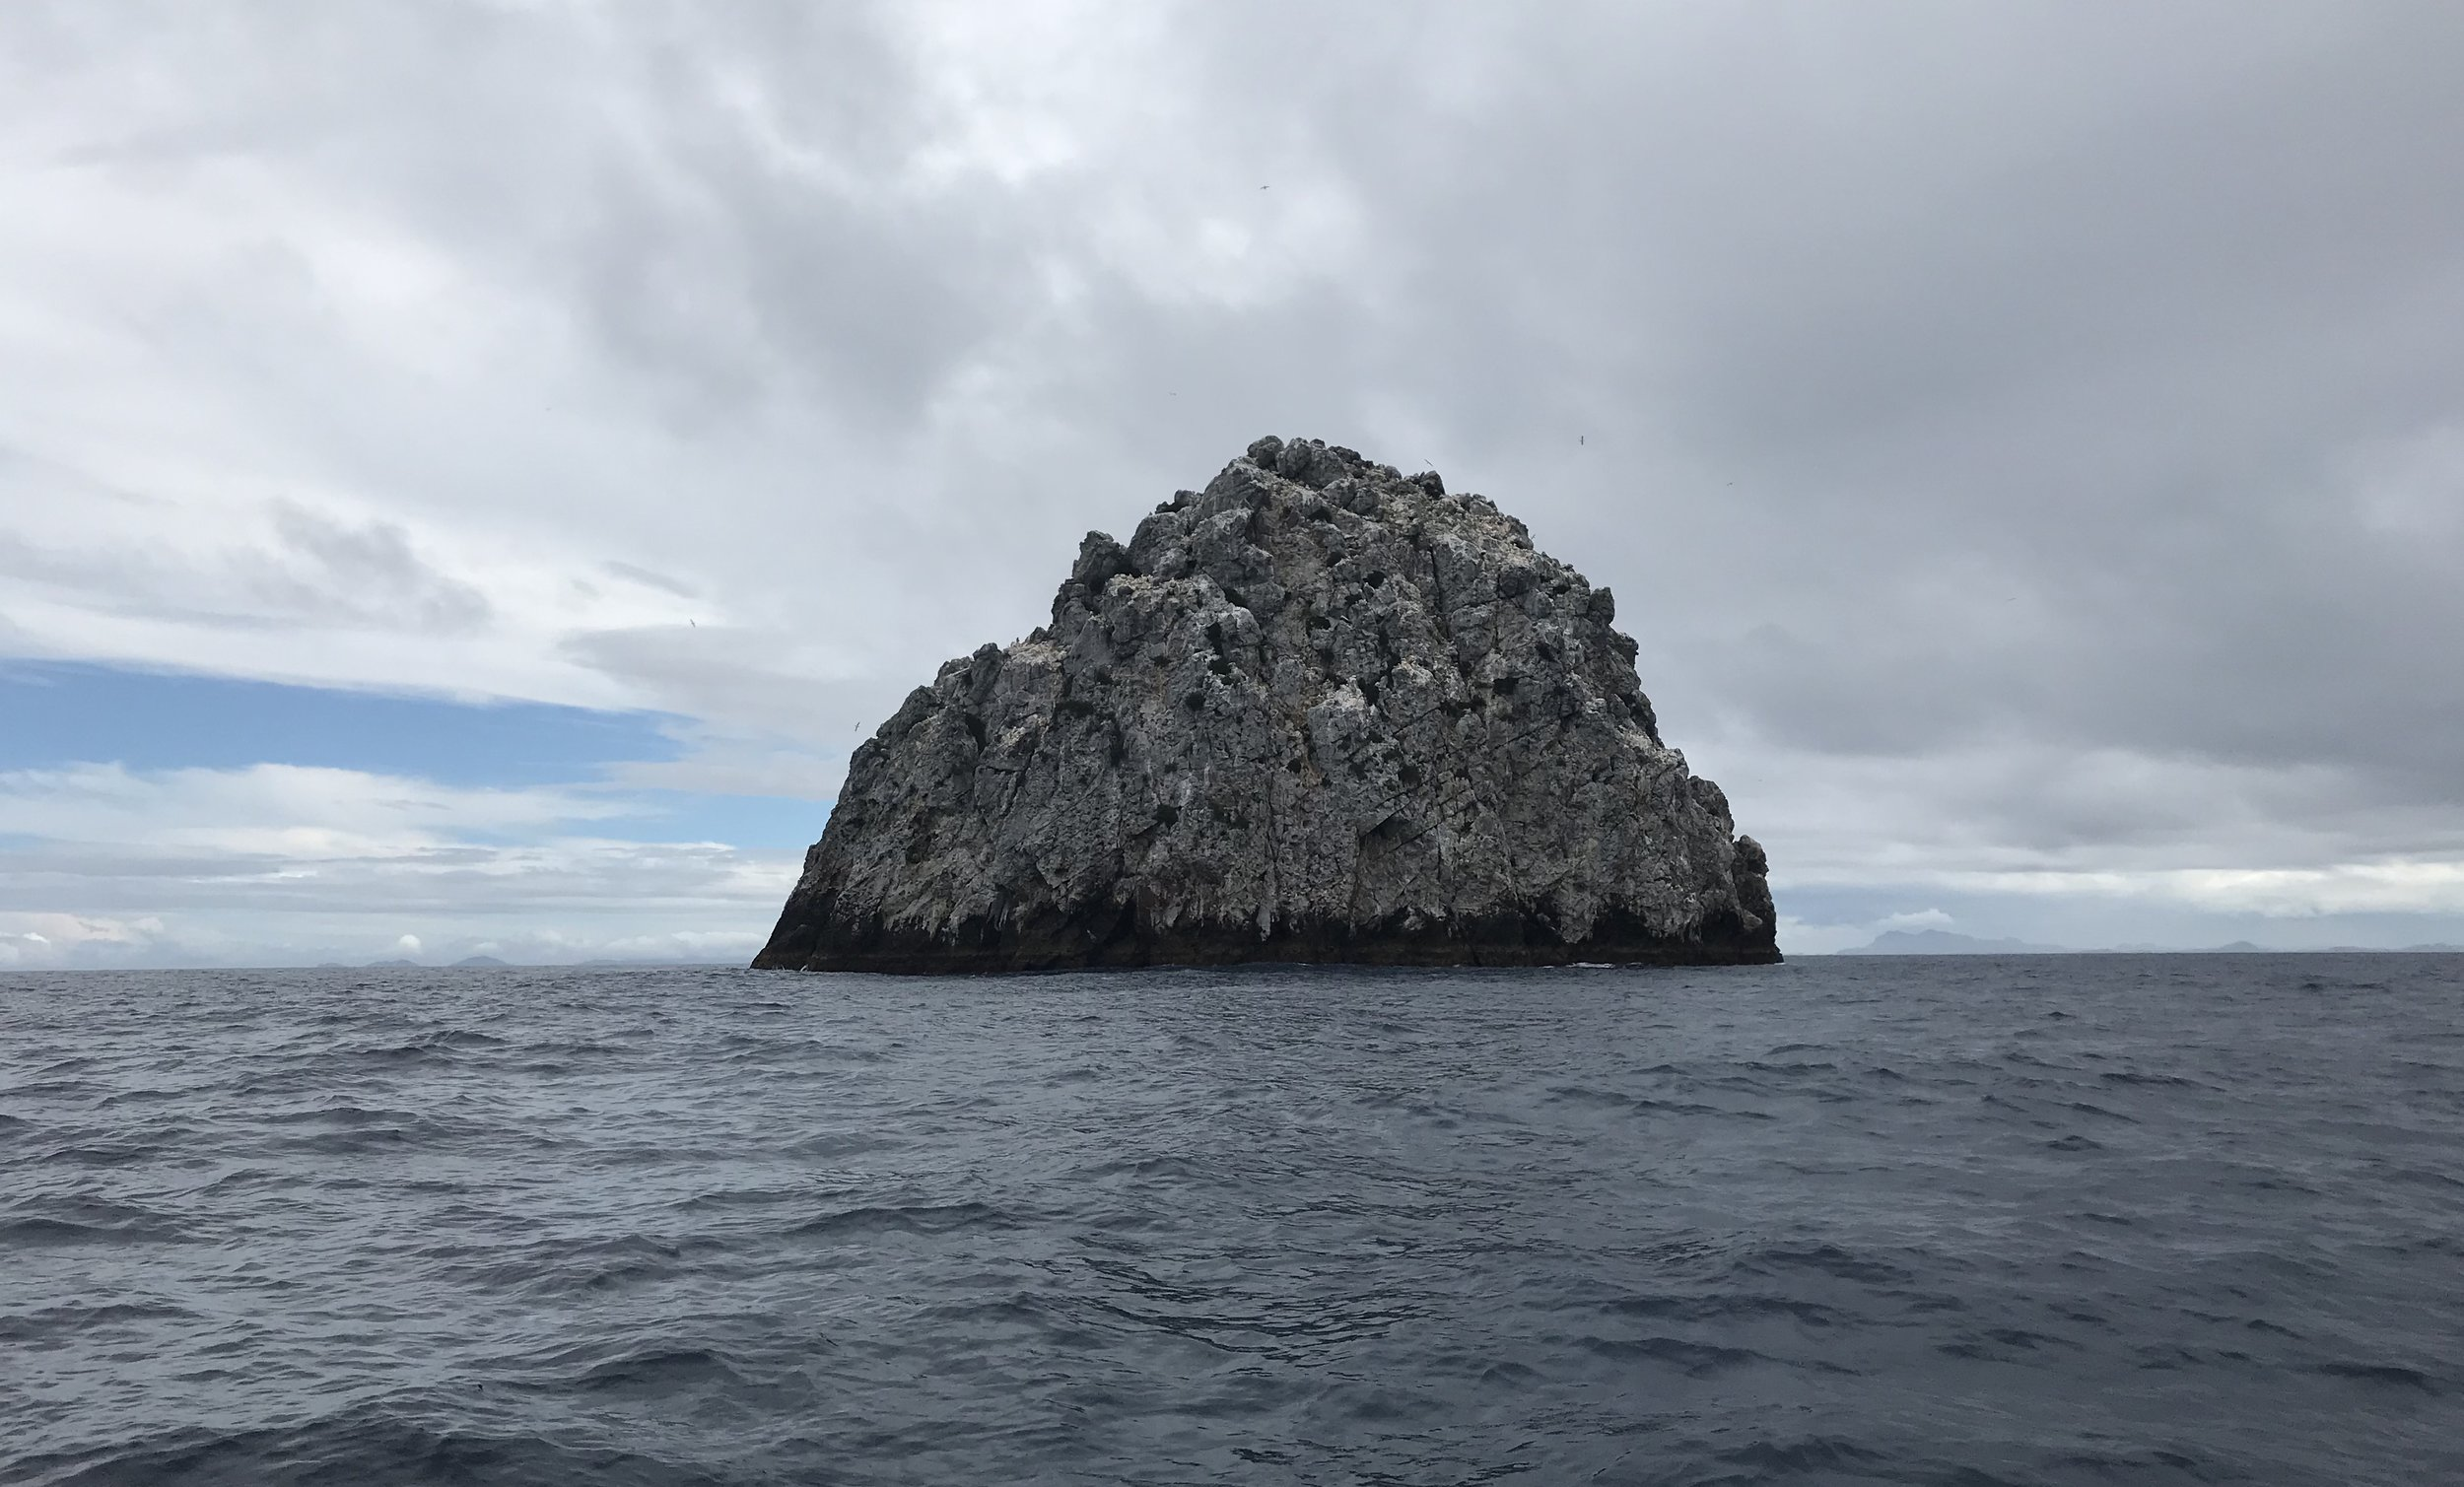 Sugarloaf Rock at the Poor Knights Islands marine reserve in Northland